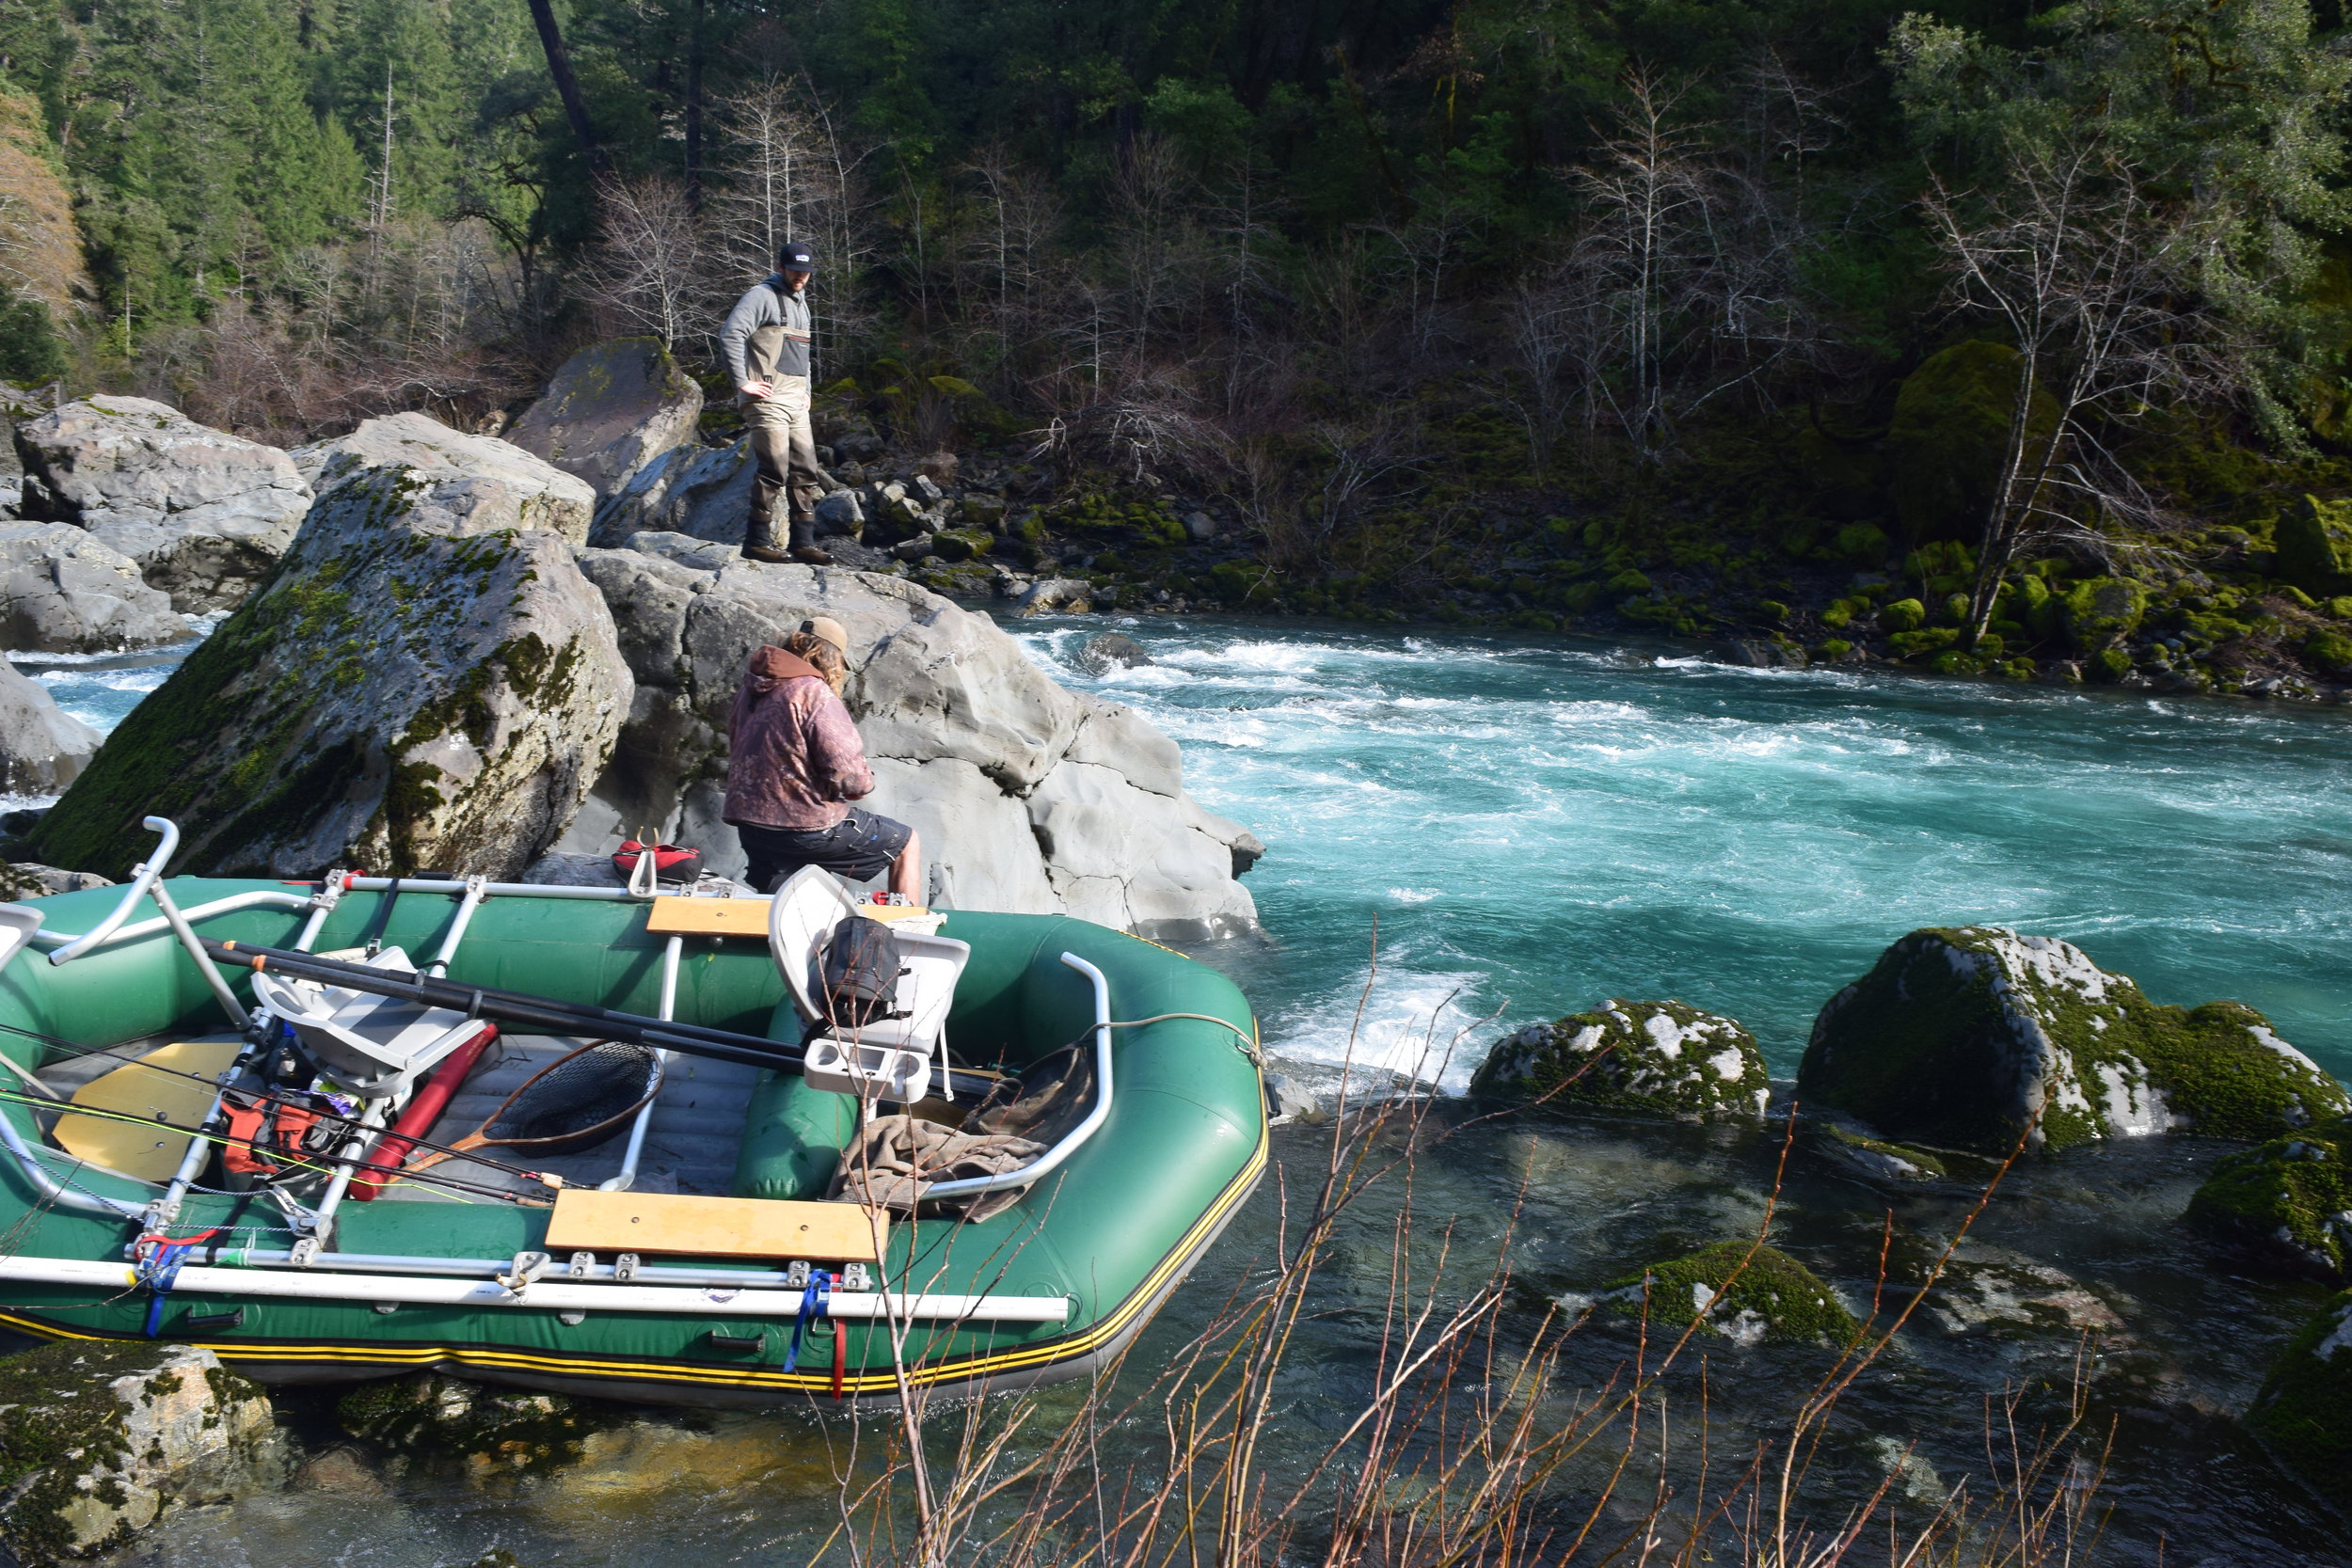 14' Odyssey Guide Raft or 18' Willie Drift Boat for float trips